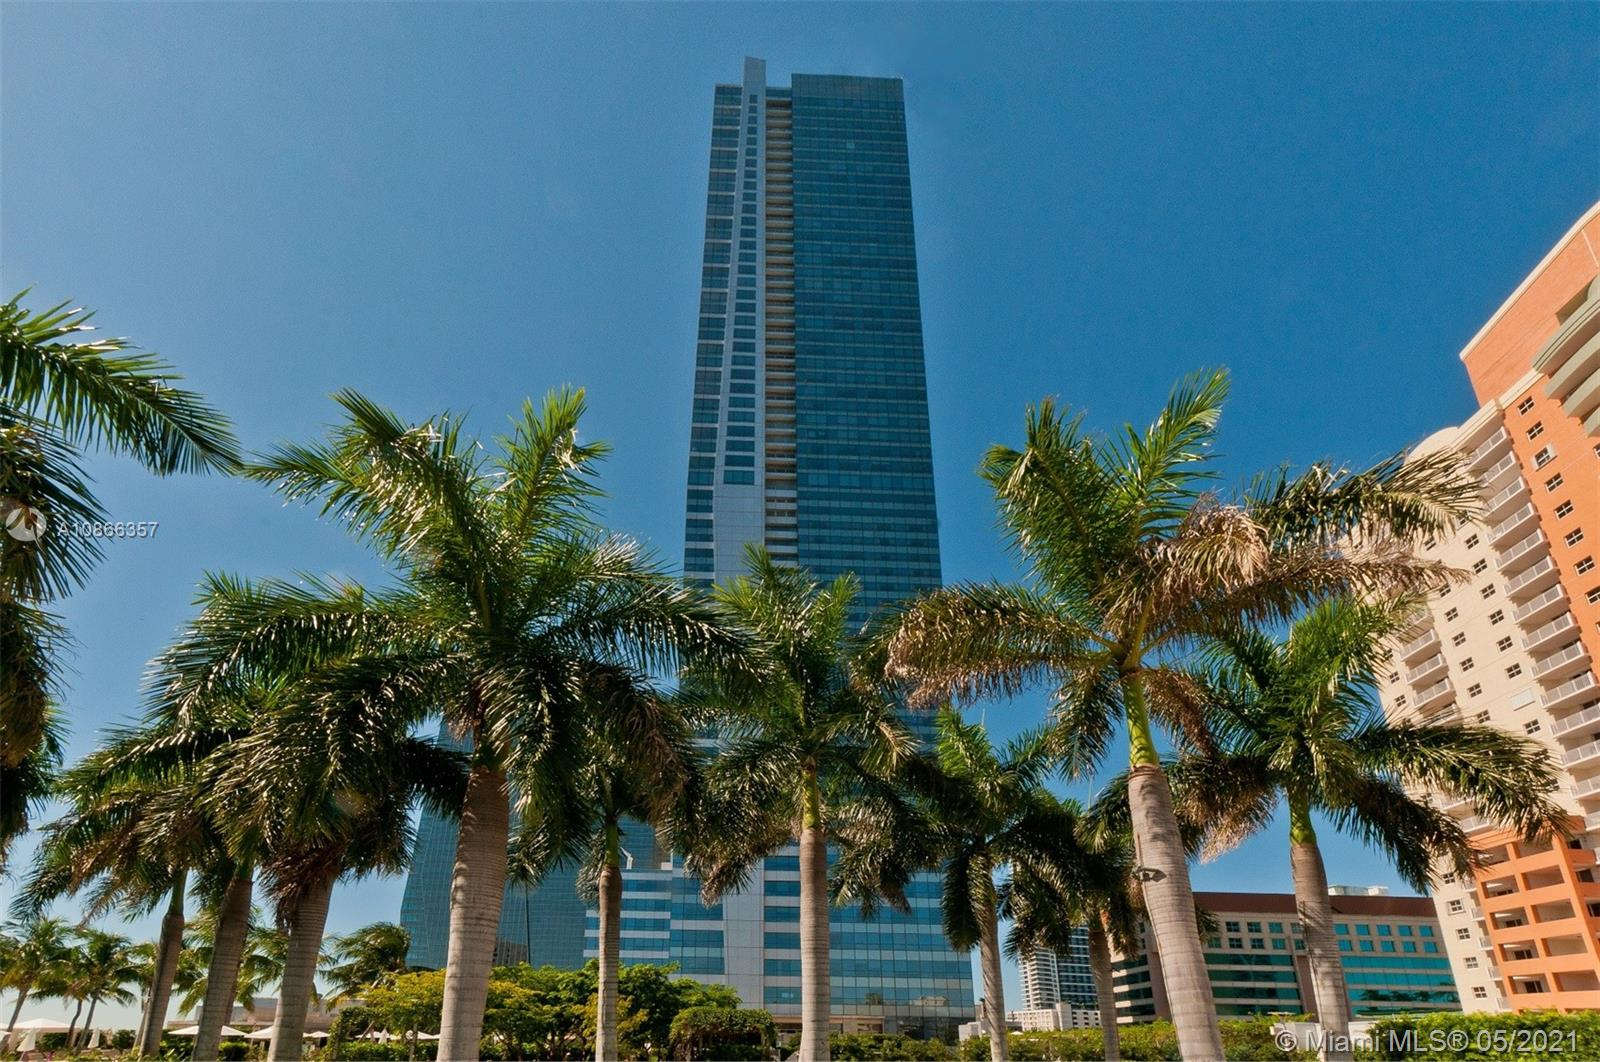 STUNNING PENTHOUSE ON THE 69TH FLOOR AT PRESTIGIOUS FOUR SEASONS RESIDENCES MIAMI. THIS MASTERPIECE OFFERS 2,139 SQ.FT. OF LIVING AREA, 2 BEDROOMS & 2½ UPGRADED BATHROOMS, STONE FLOORS, HIGH CEILINGS, ELECTRIC BLINDS, AMAZING UPGRADED KITCHEN WITH PANTRY AND TOP GRADE APPLIANCES, SEPARATE LAUNDRY ROOM, EXQUISITE DETAILS AND FINISHES THROUGHOUT. DISCOVER THE BEST AND UNOBSTRUCTED BIRD'S EYE VIEWS OF THE ATLANTIC OCEAN, BISCAYNE BAY, SOUTH BEACH, MIAMI BEACH AND THE DRAMATIC MIAMI SKYLINE AS FAR AS THE EYE CAN SEE!!! ENJOY OUTSTANDING 5 STAR AMENITIES, ROOM SERVICE, 24HS CONCIERGE- VALET- SECURITY, 50,000 SQ.FT. GYM & SPA, OWNERS' LOUNGE AND MORE!!! SEE 3D VIRTUAL TOUR